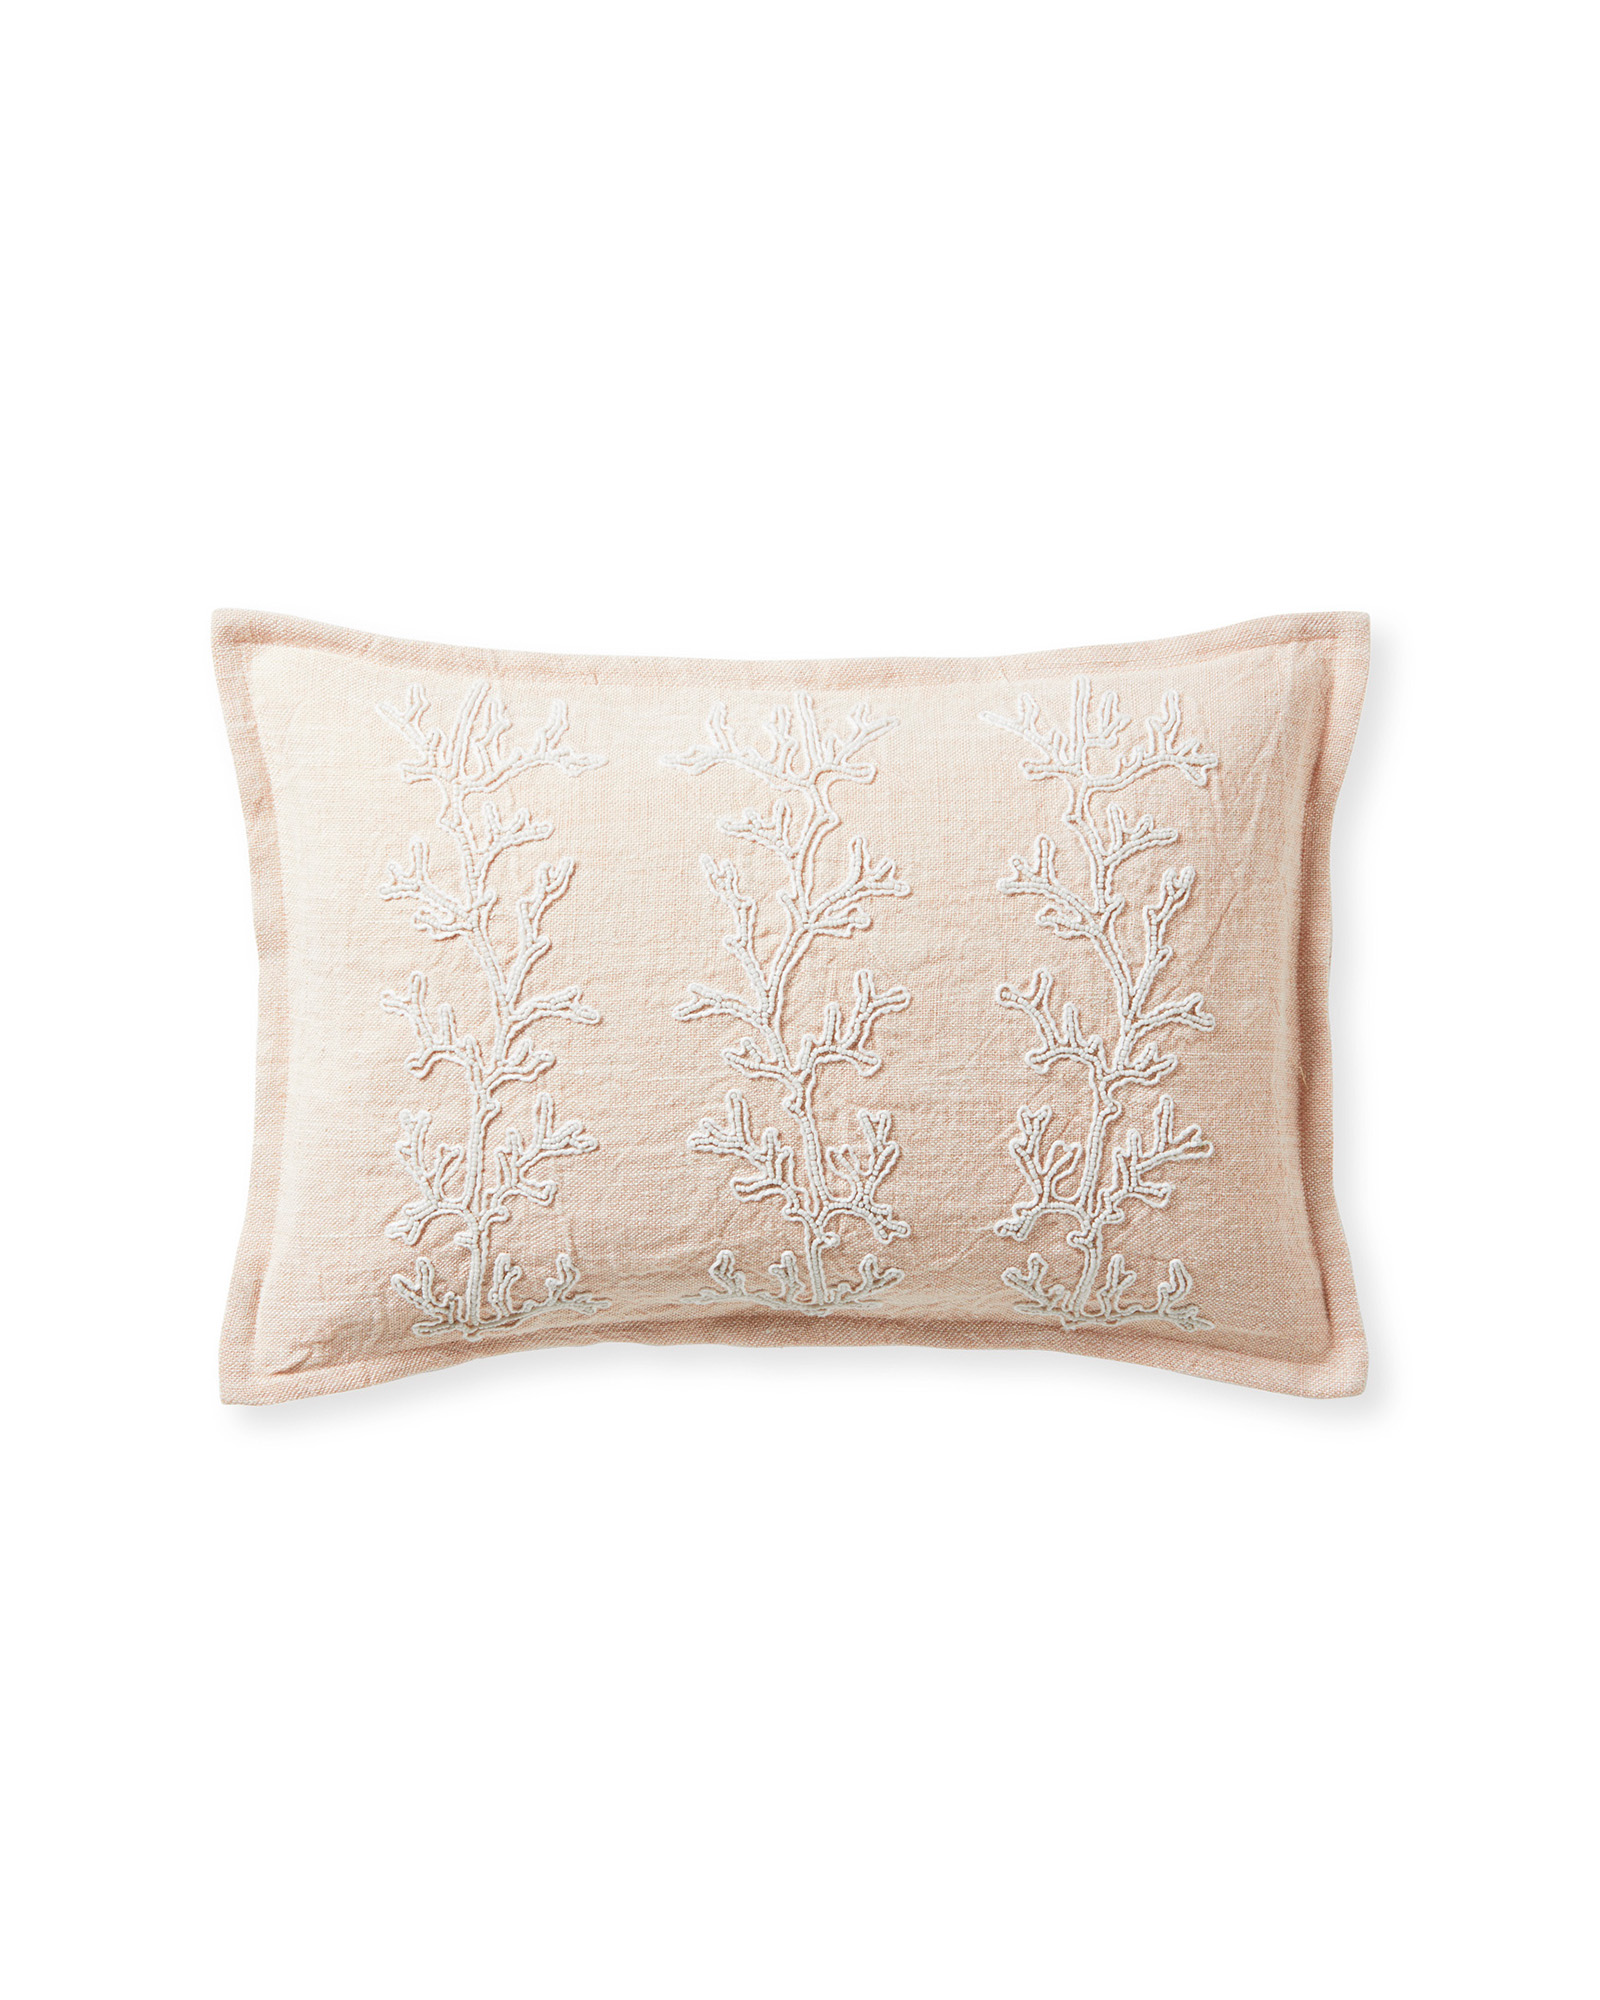 Beach Bay Pillow Cover - Pink Sand,